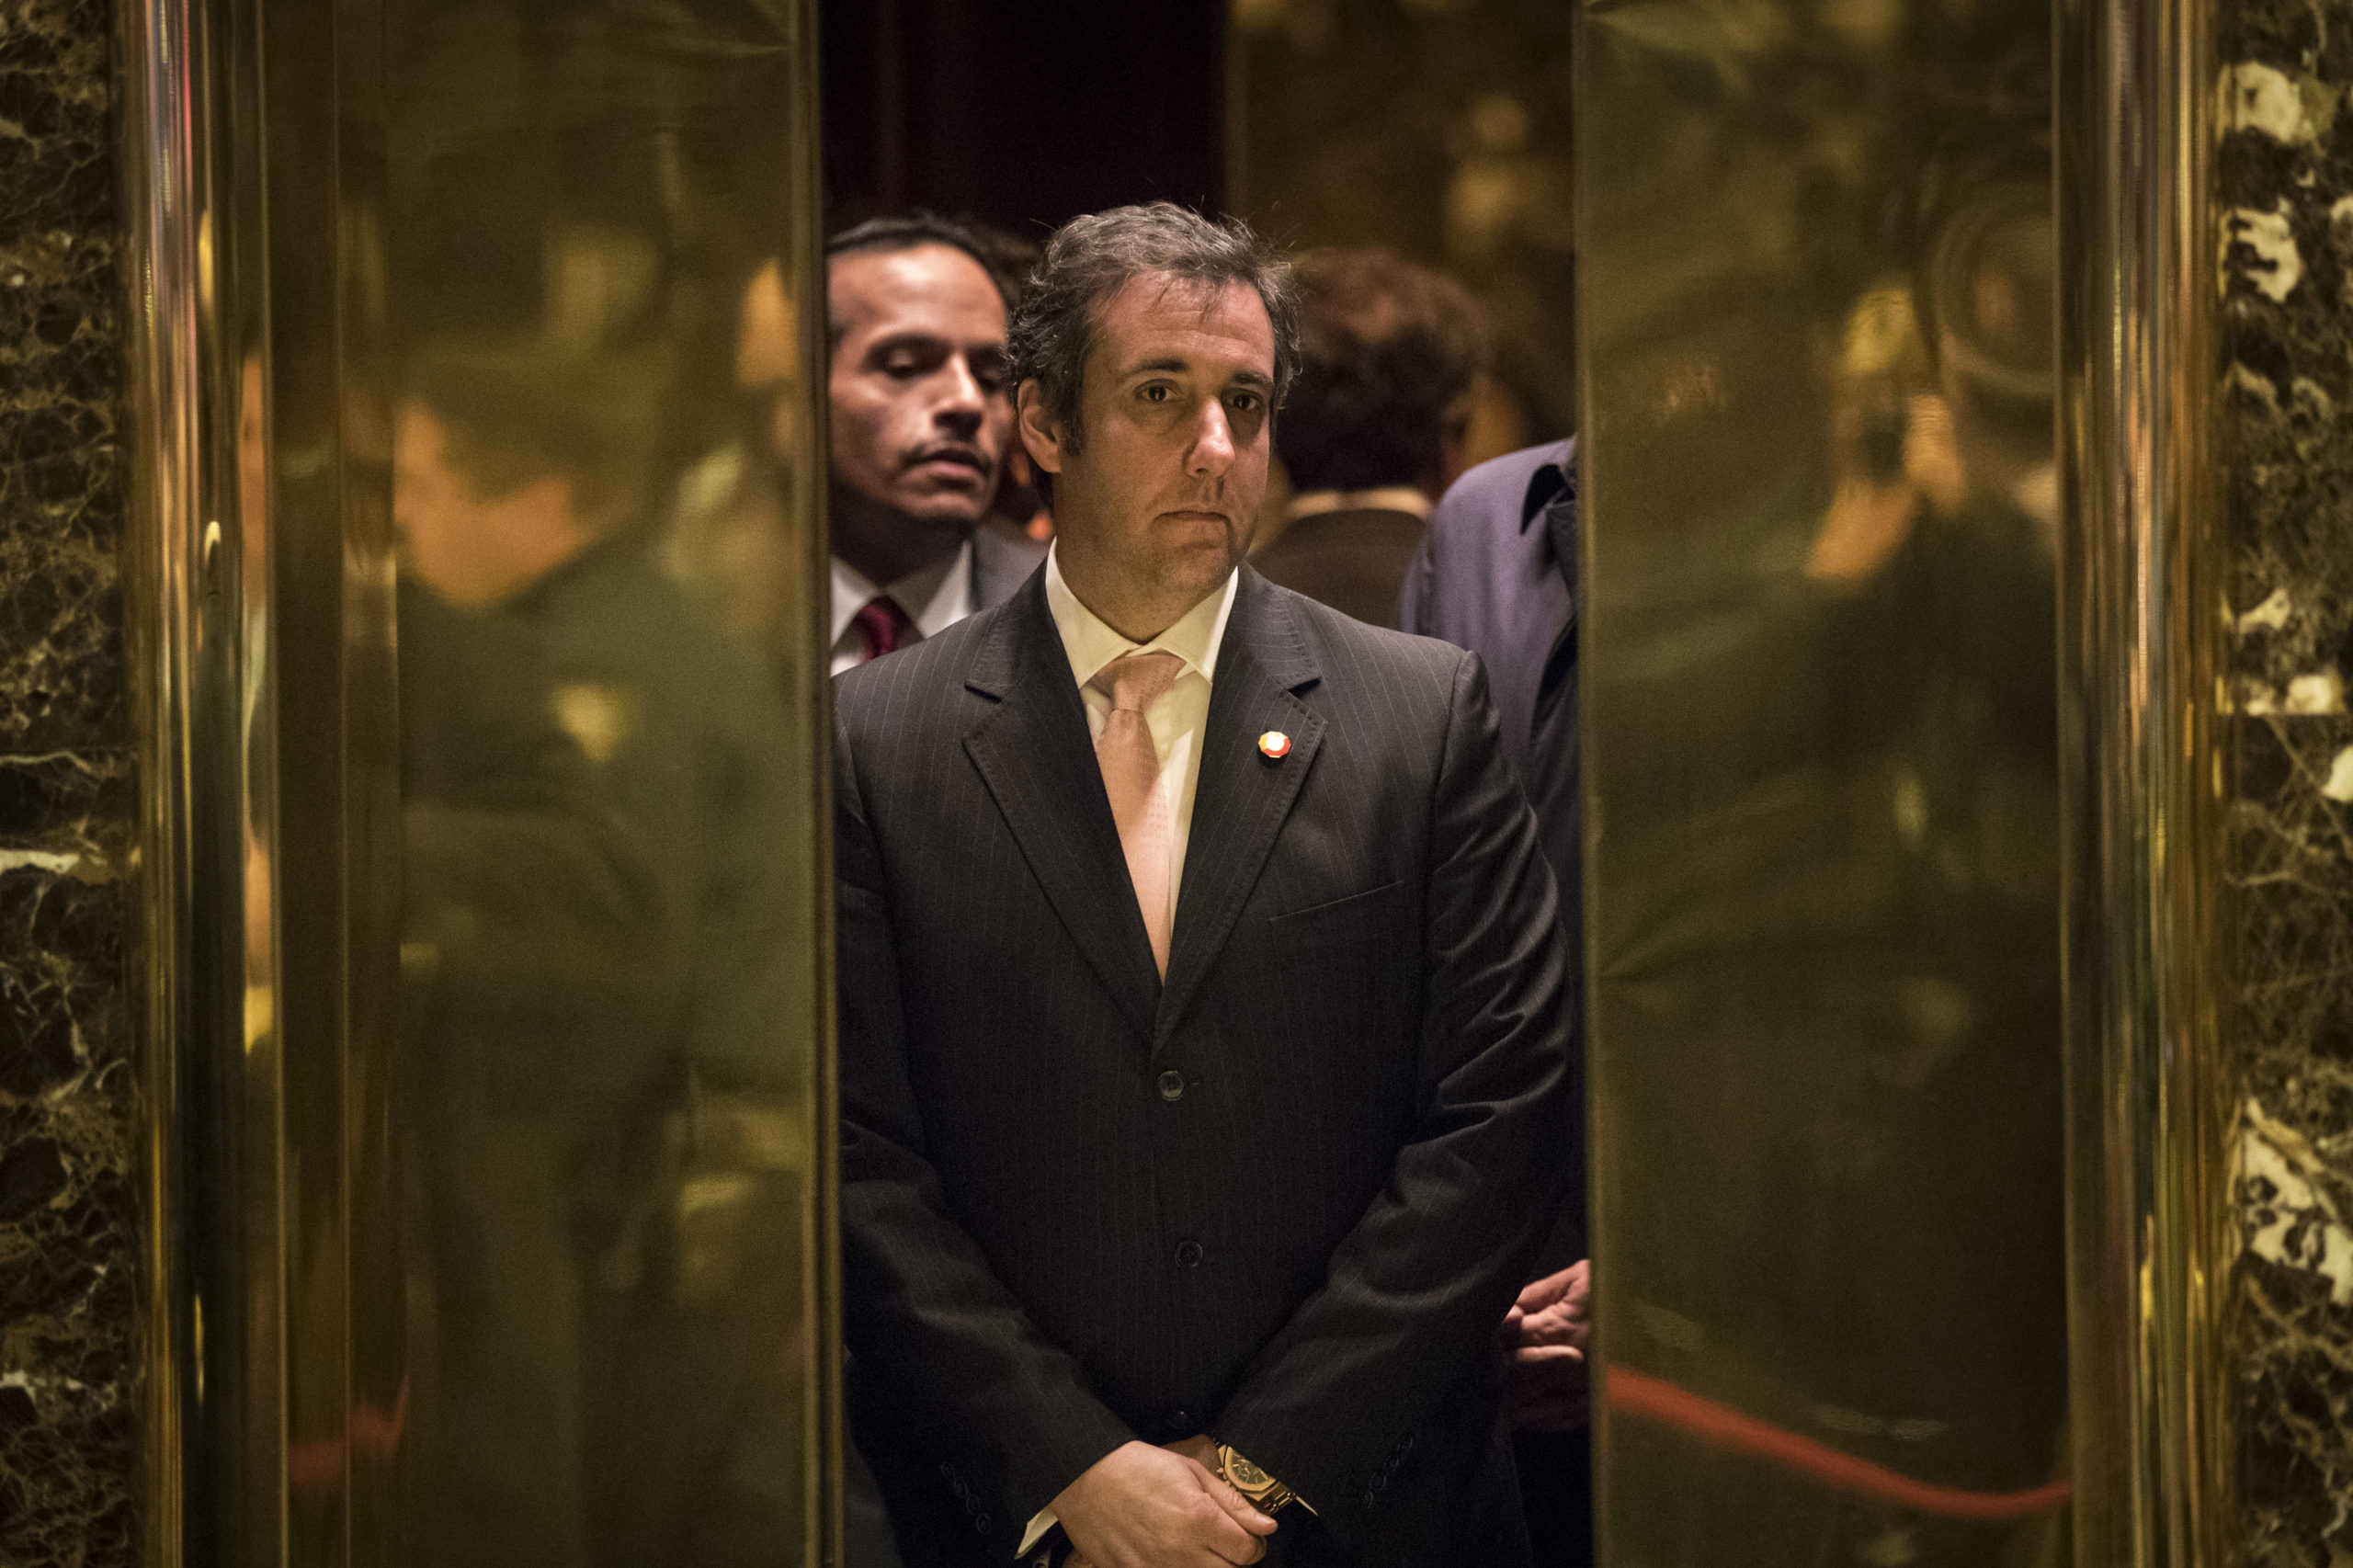 Former fixer to Donald Trump, Michael Cohen, made the allegations